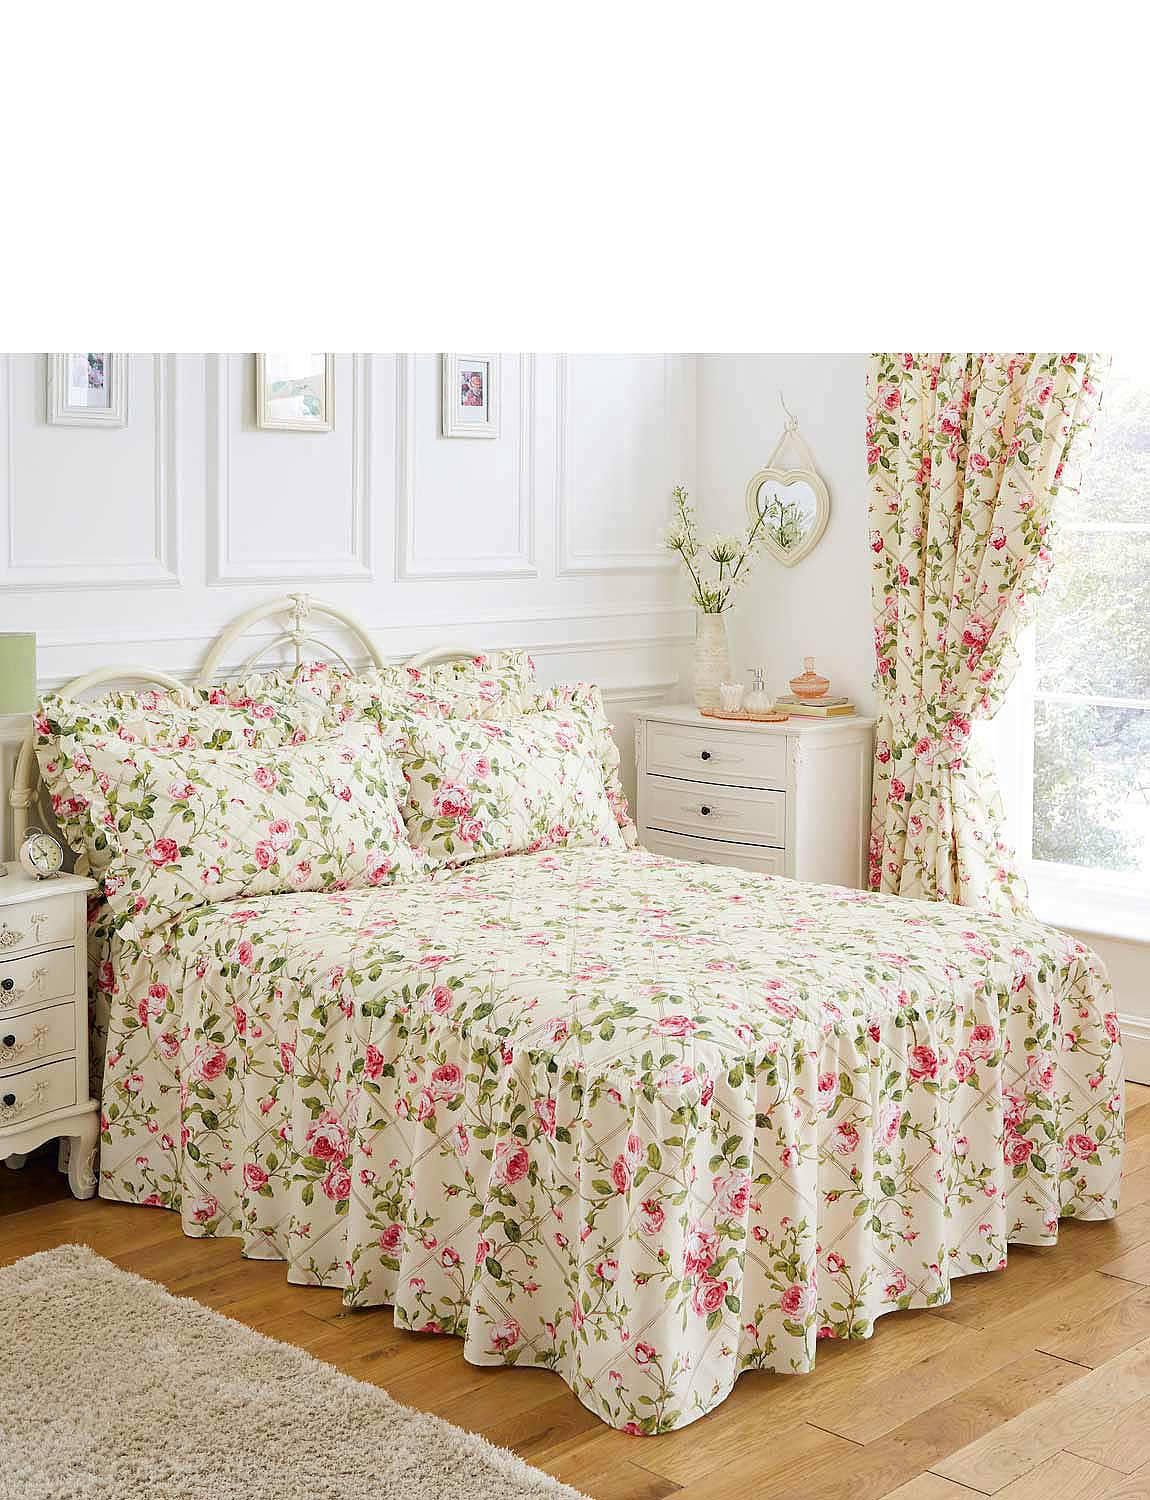 Trailing Rose Quilted Fitted Bedspread, Pillowshams and Lined Curtains  - Rose